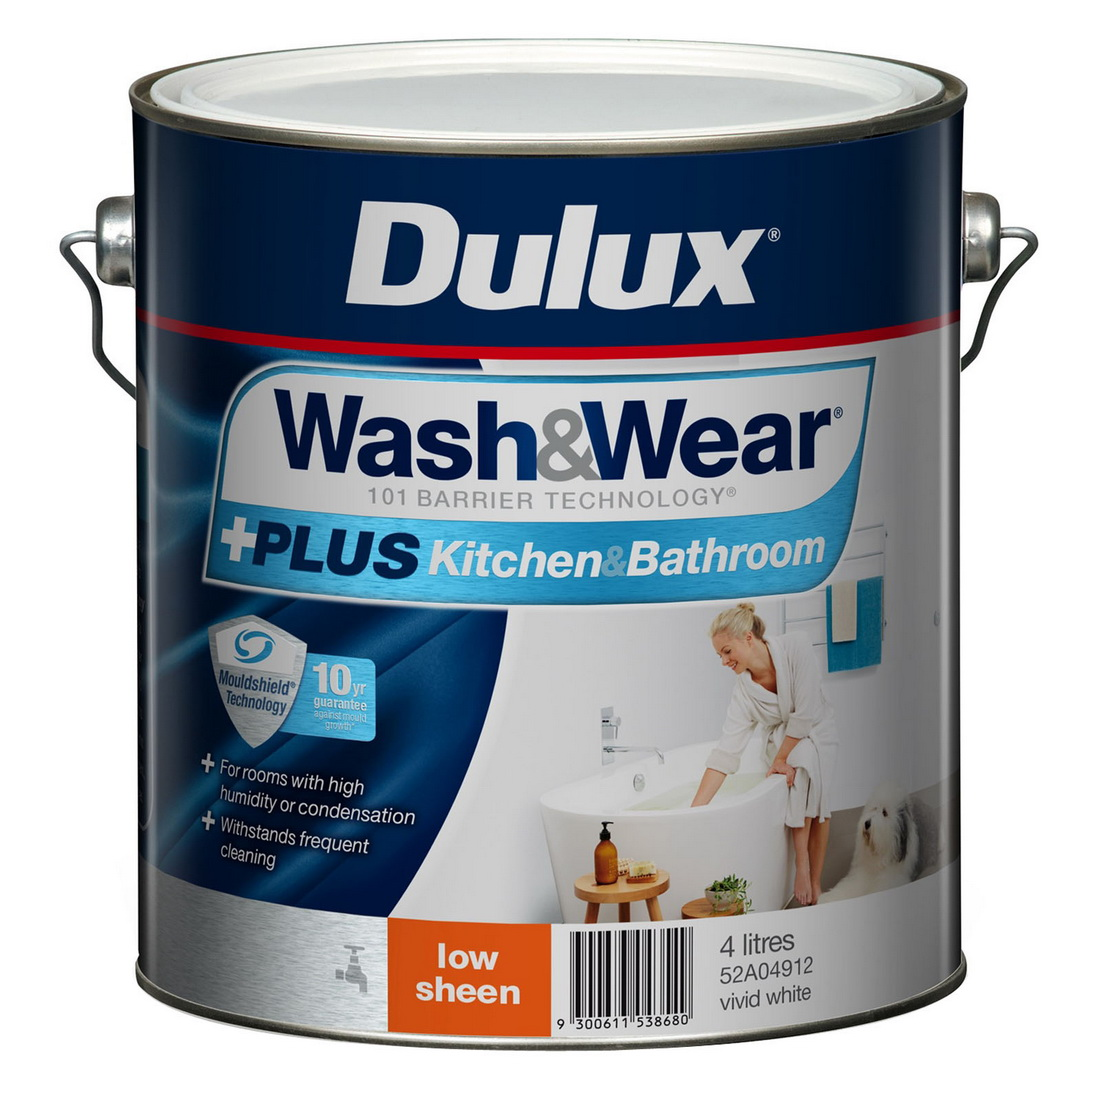 Wash And Wear Plus Kitchen And Bathroom Low Sheen Vivid White 4L